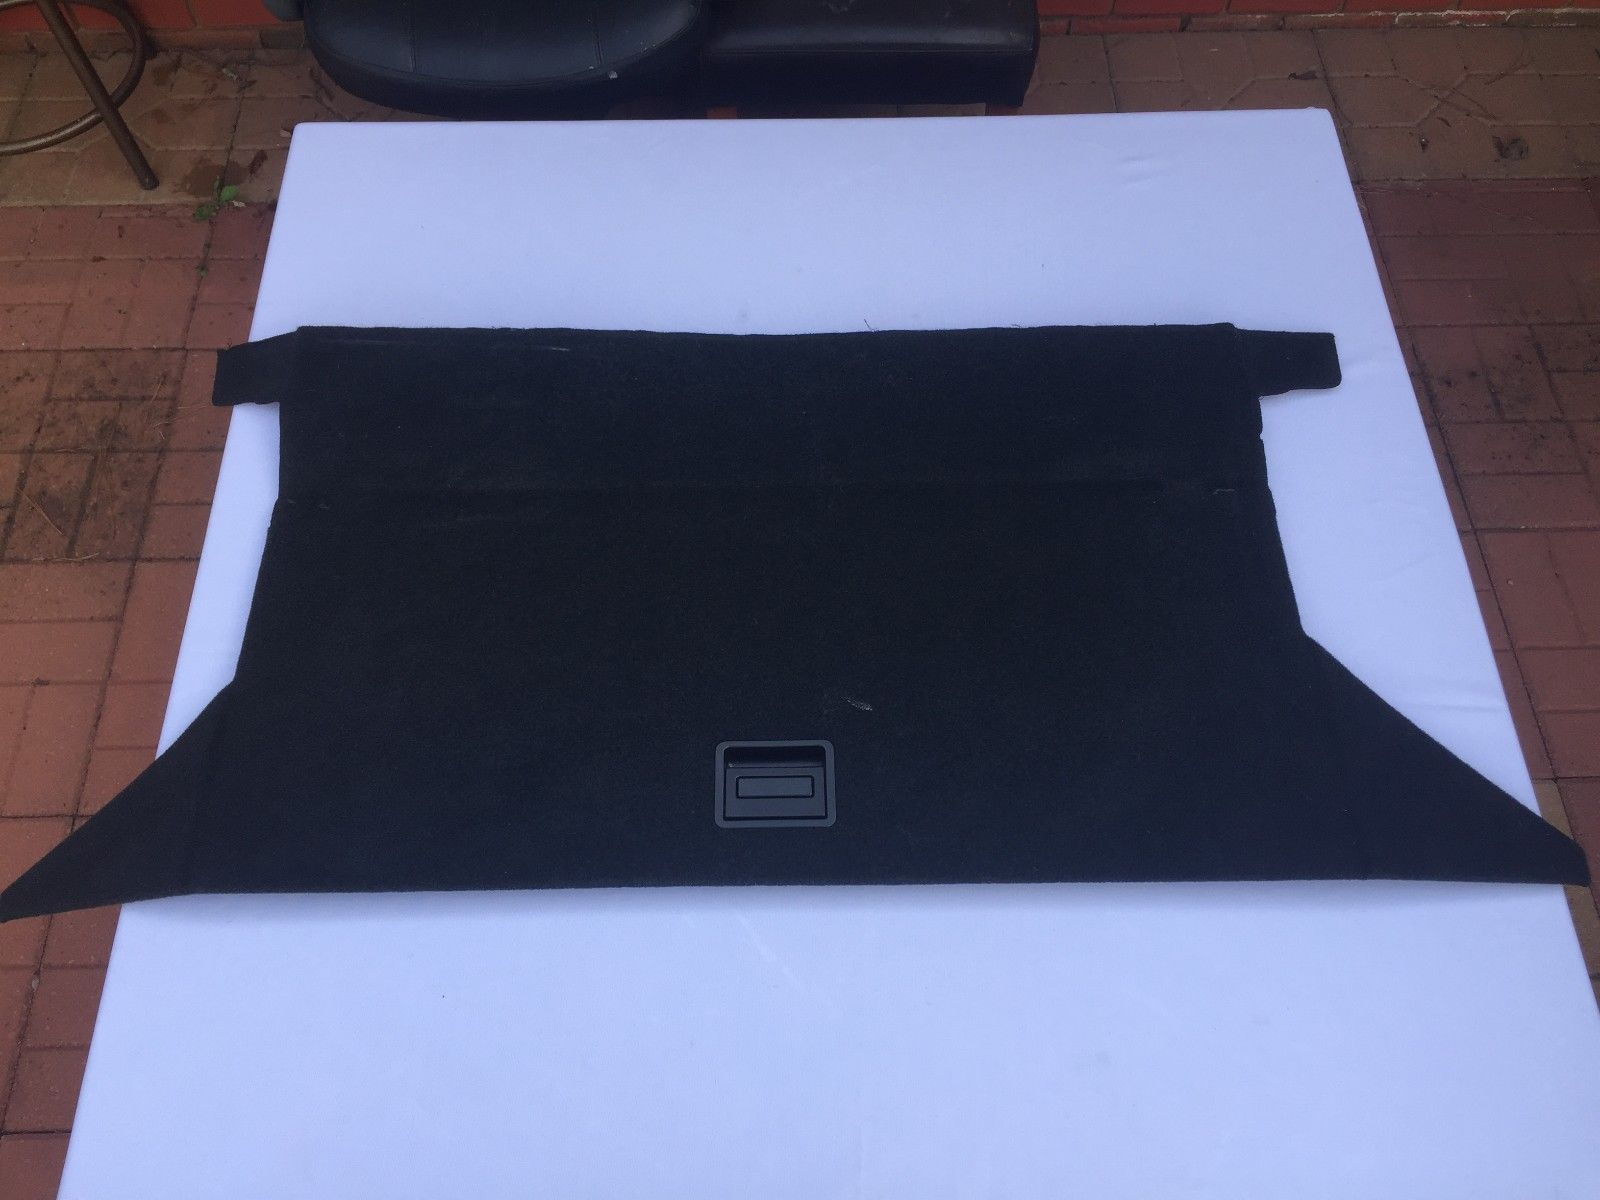 2005 LEXUS RX330 TRUNK HARD FLOOR MAT SPARE COVER LINER OEM